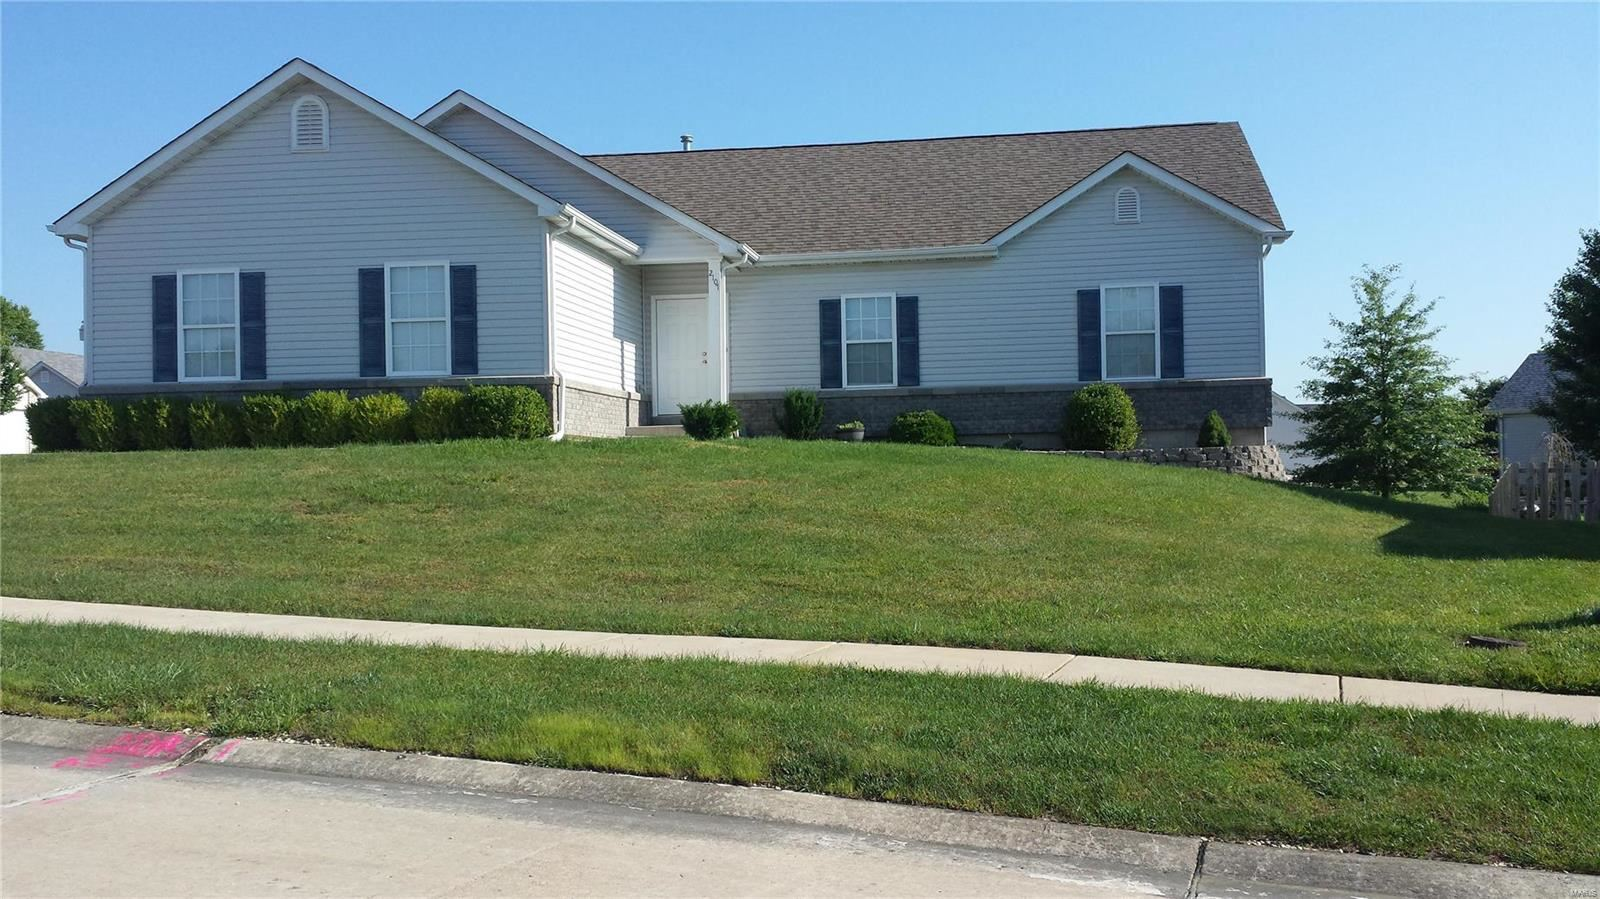 2107 Shannon Place, Wentzville, MO 63385 - MLS#: 20054032